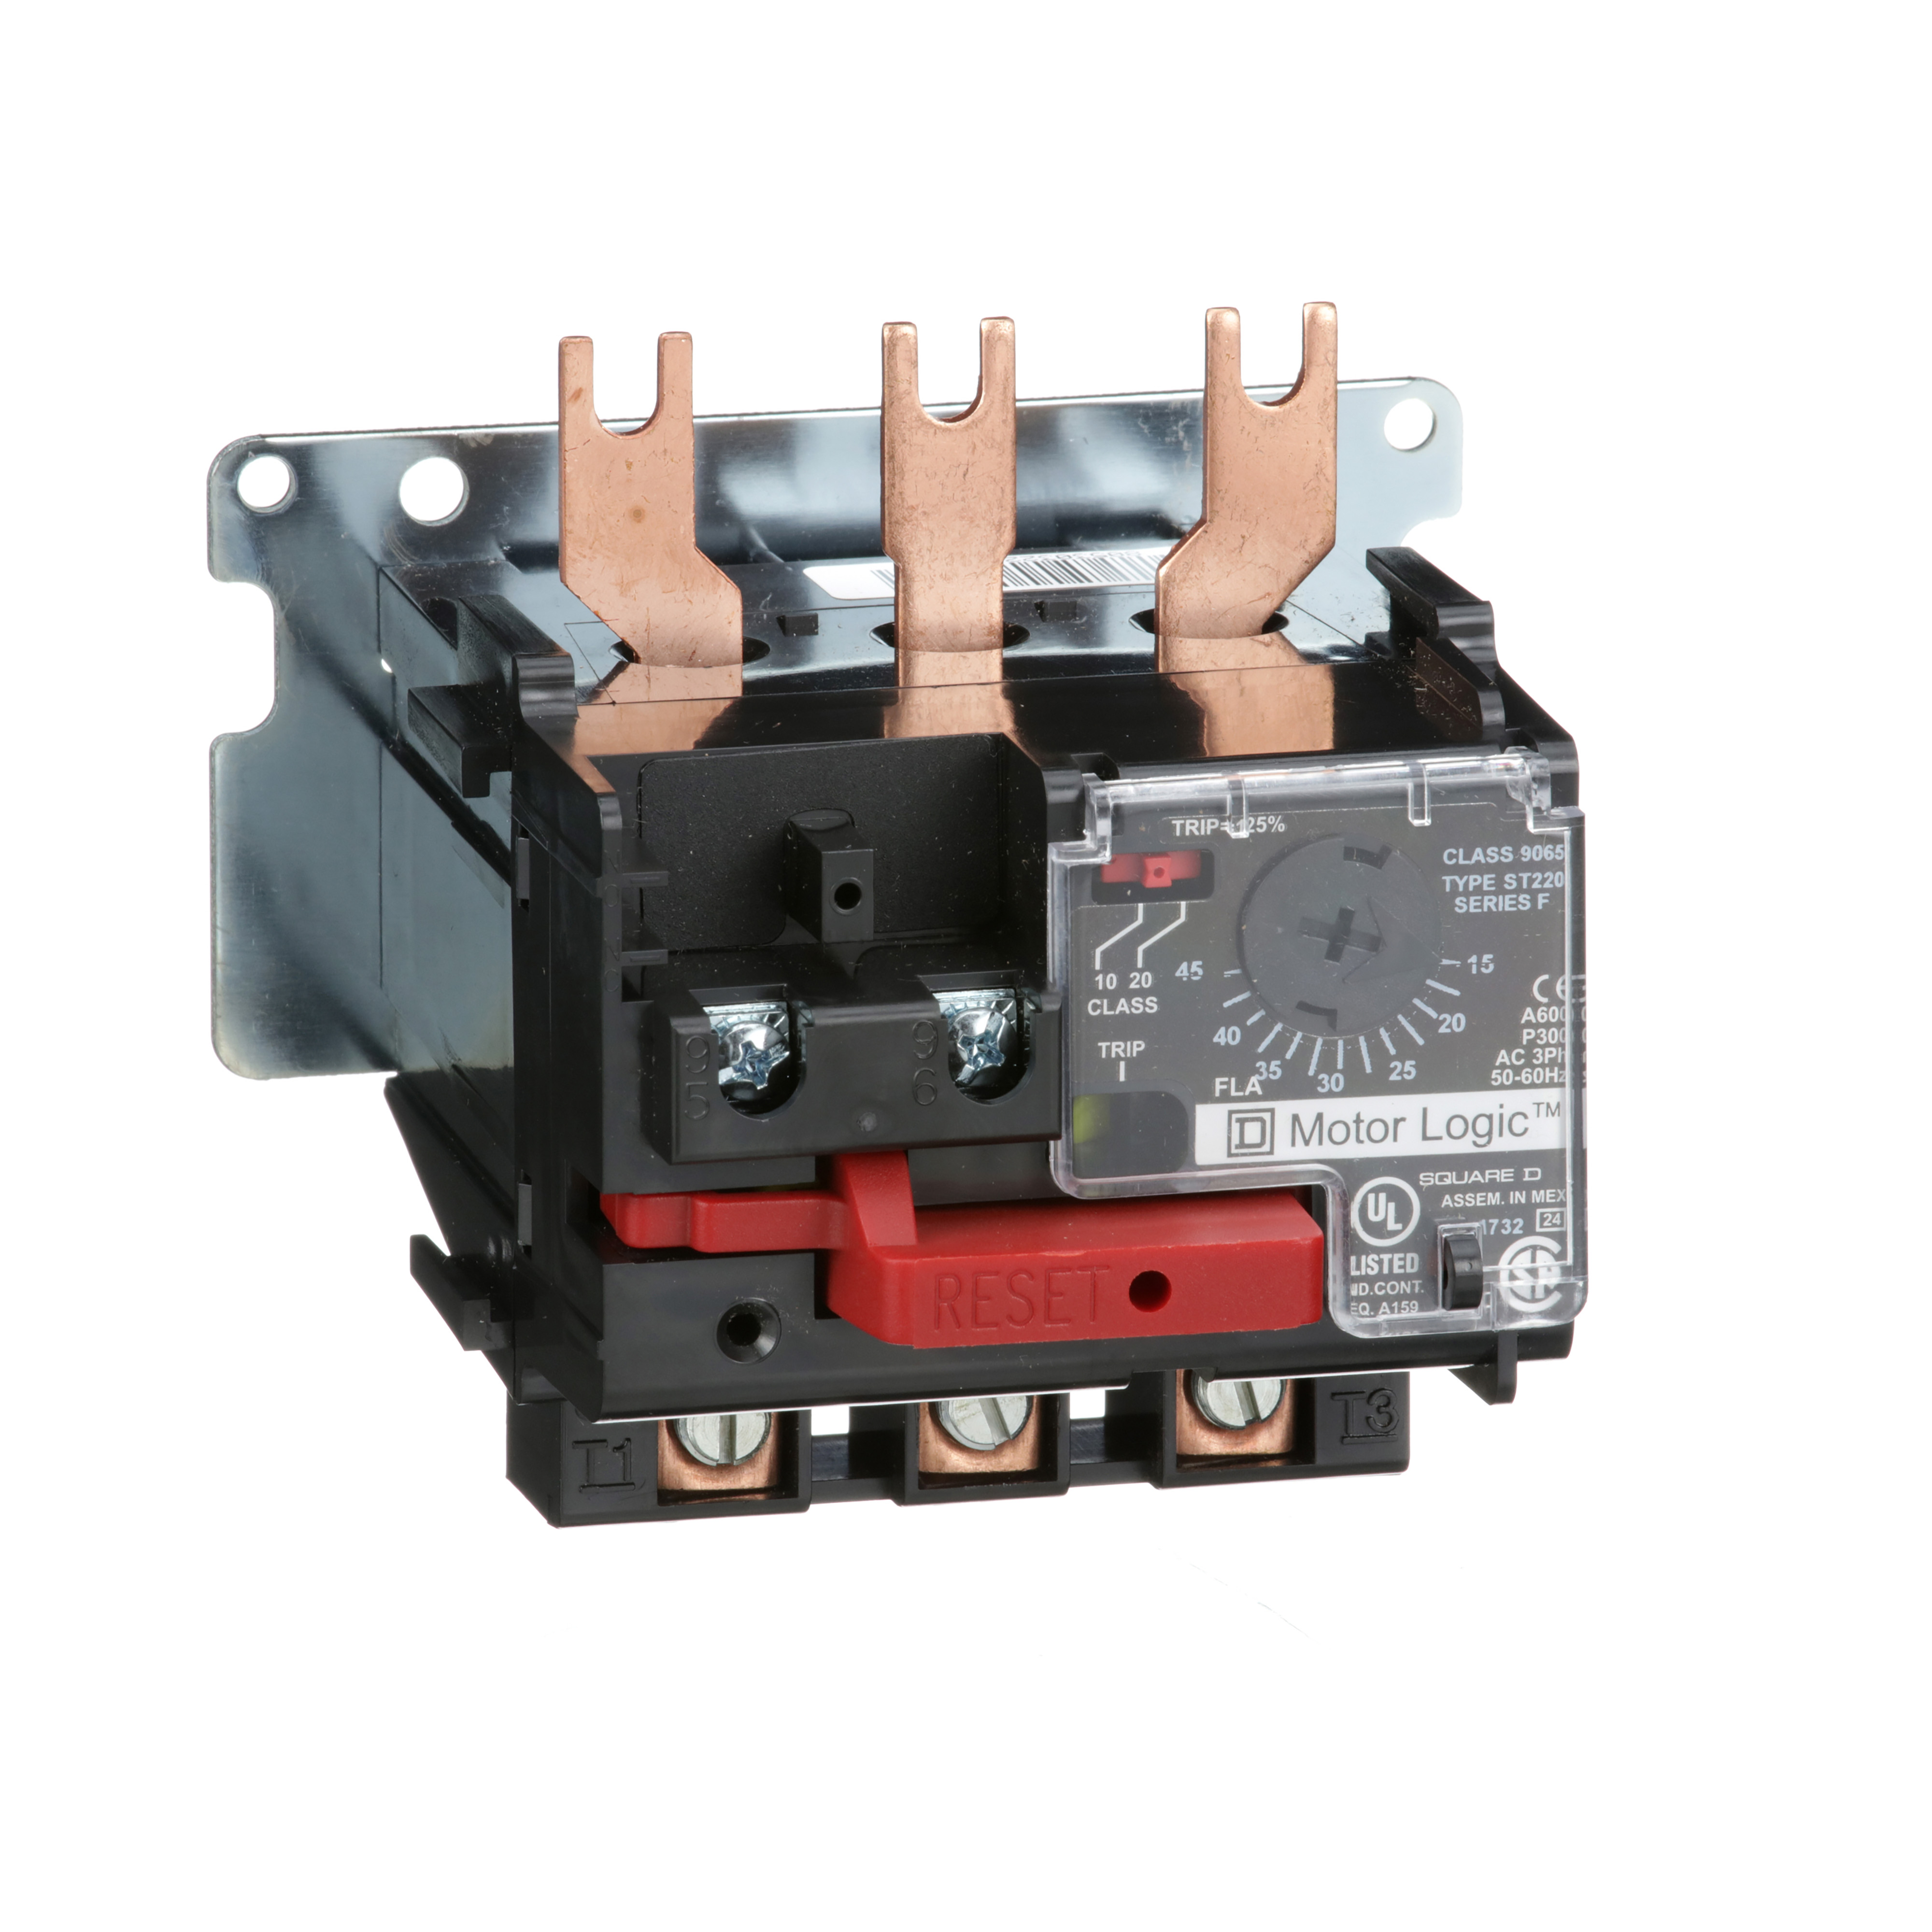 SQUARE D Motor Logic solid state overload relay, replacement, NEMA Size 2, 15 to 45 A, 600 VAC